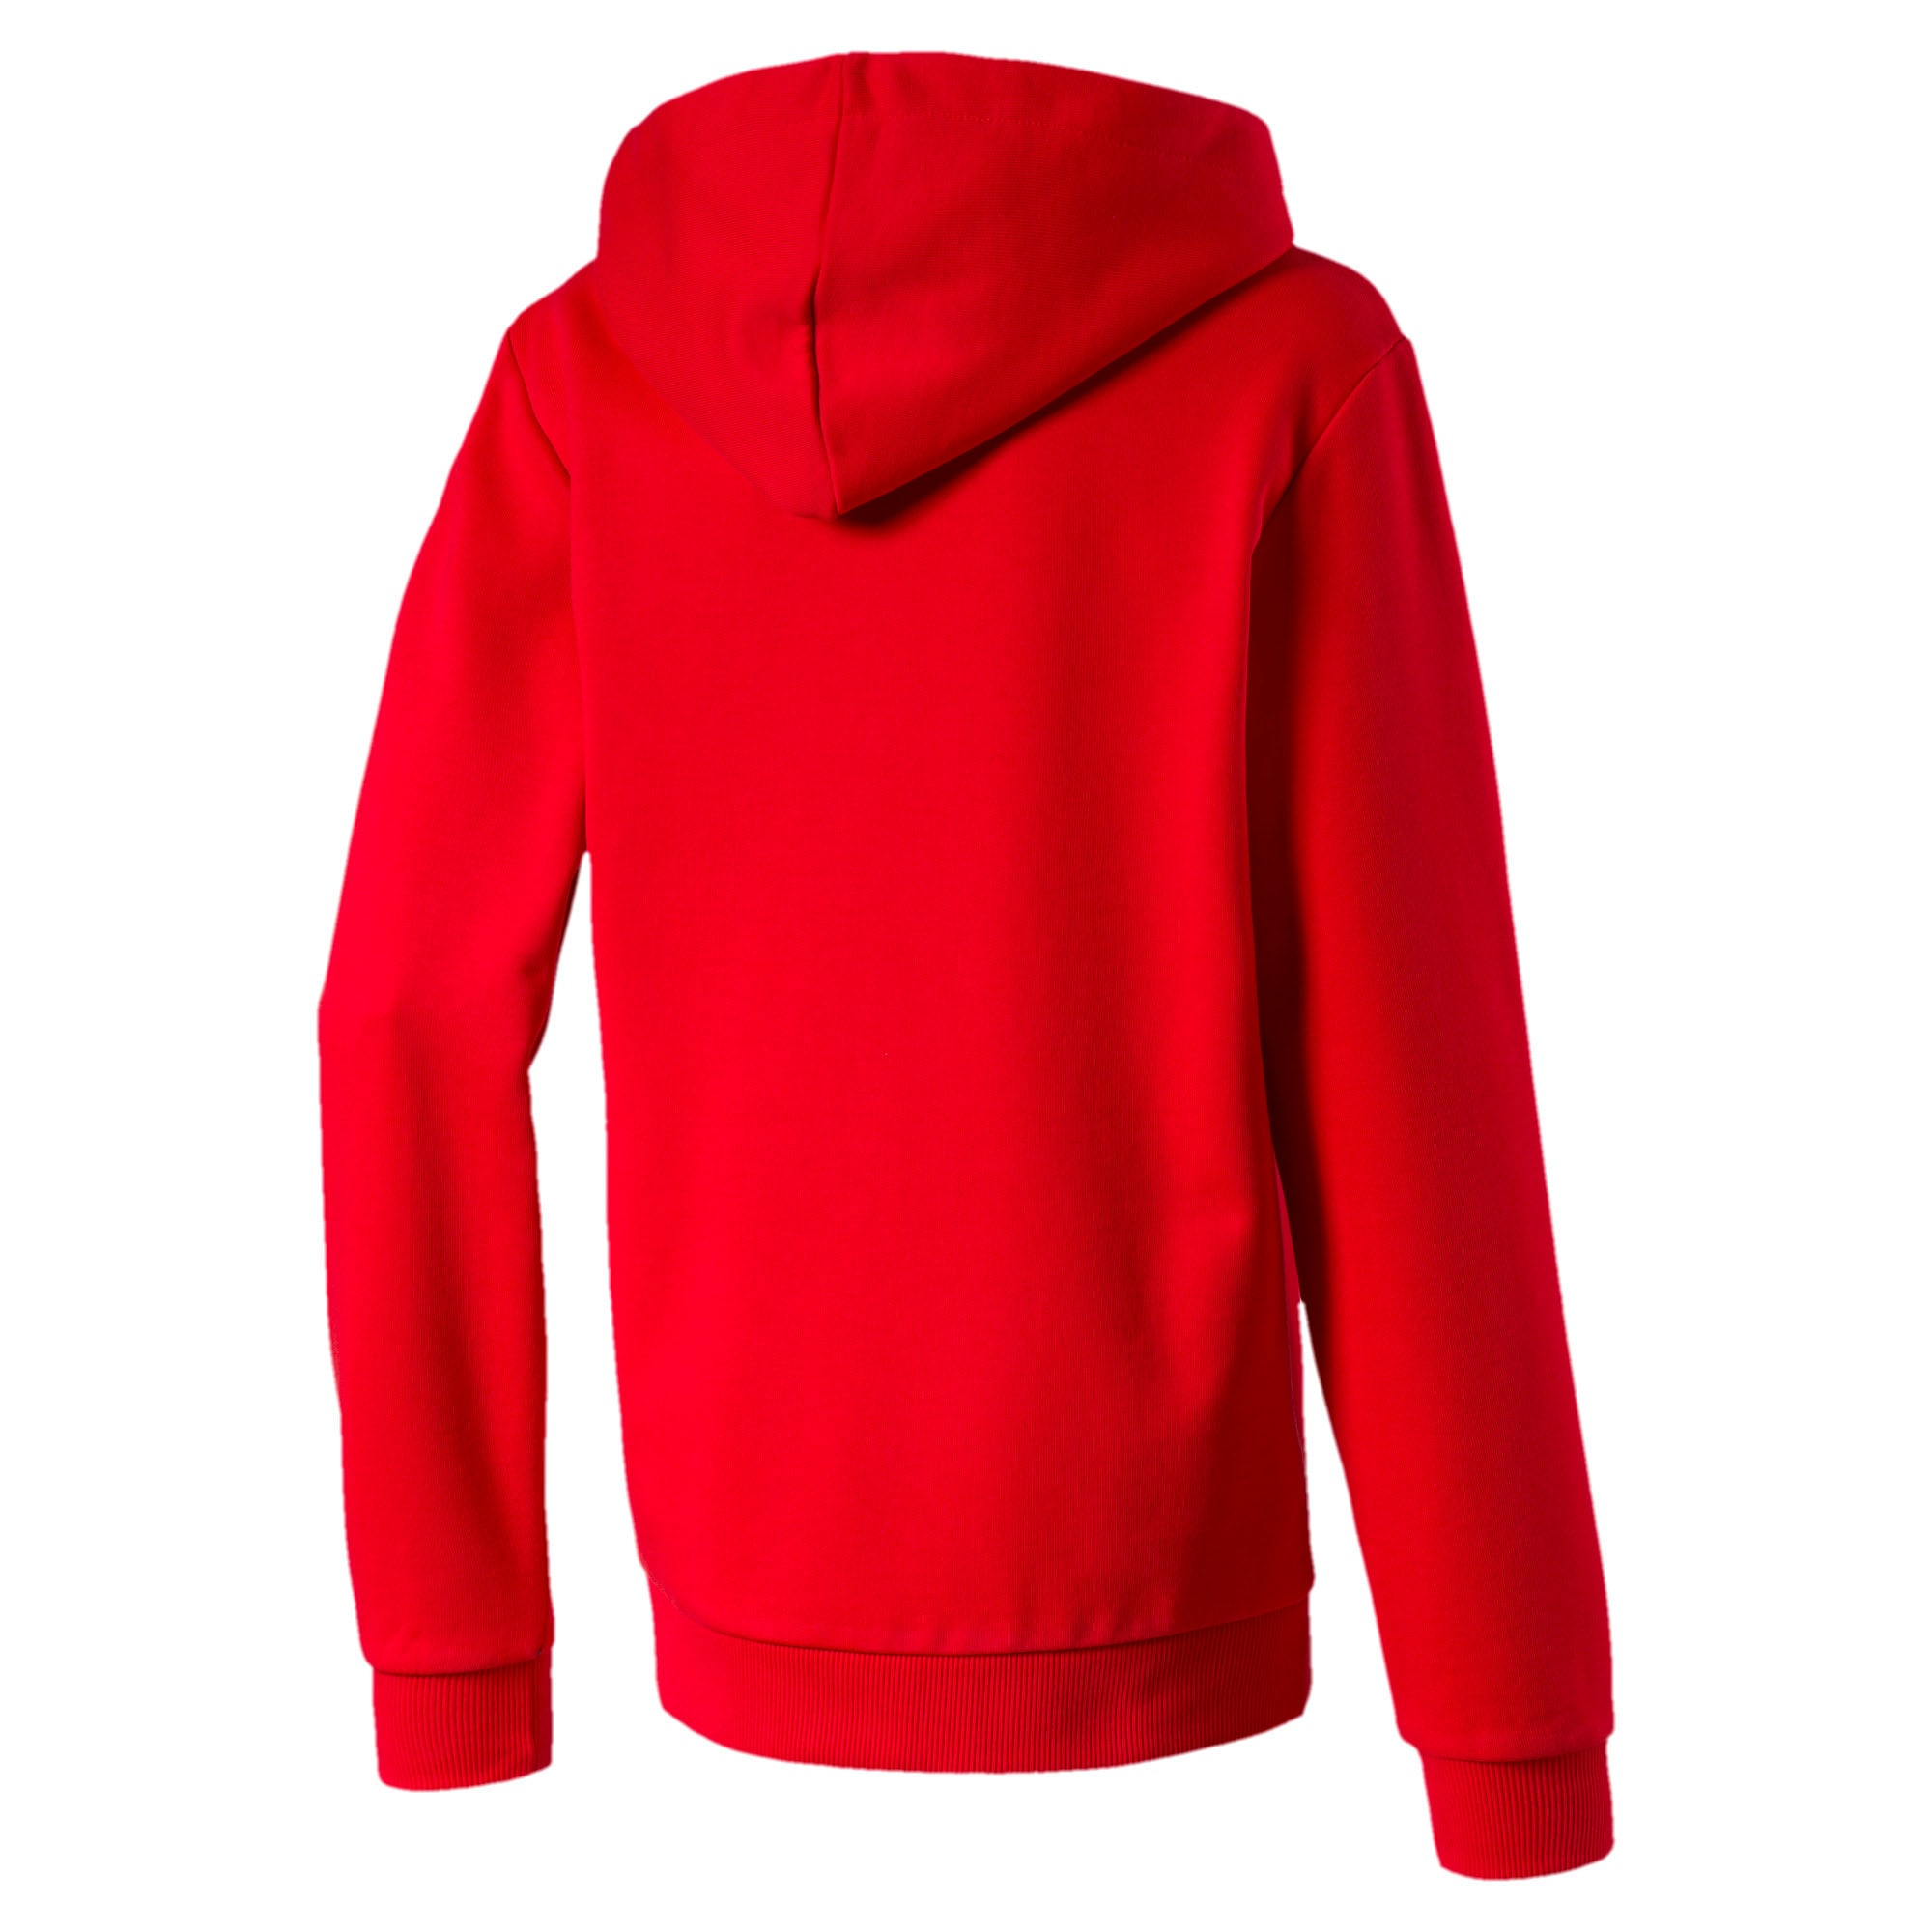 Thumbnail 2 of Classics Boys' Hoodie, High Risk Red, medium-IND